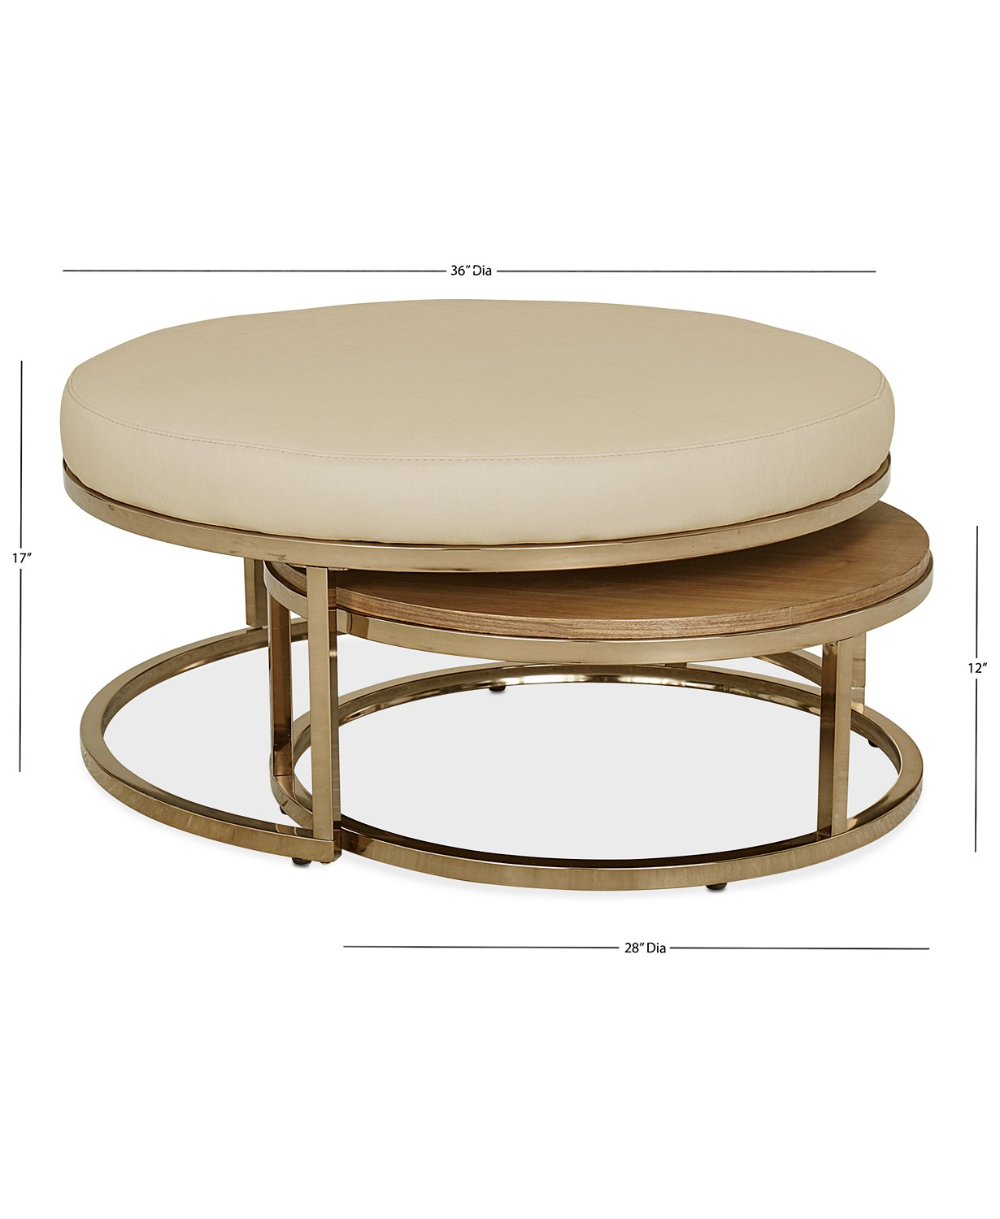 Furniture Jennova Upholstered Round Nesting Coffee Table Created For Macy S Rev Round Nesting Coffee Tables Nesting Coffee Tables Round Ottoman Coffee Table [ 1219 x 1000 Pixel ]